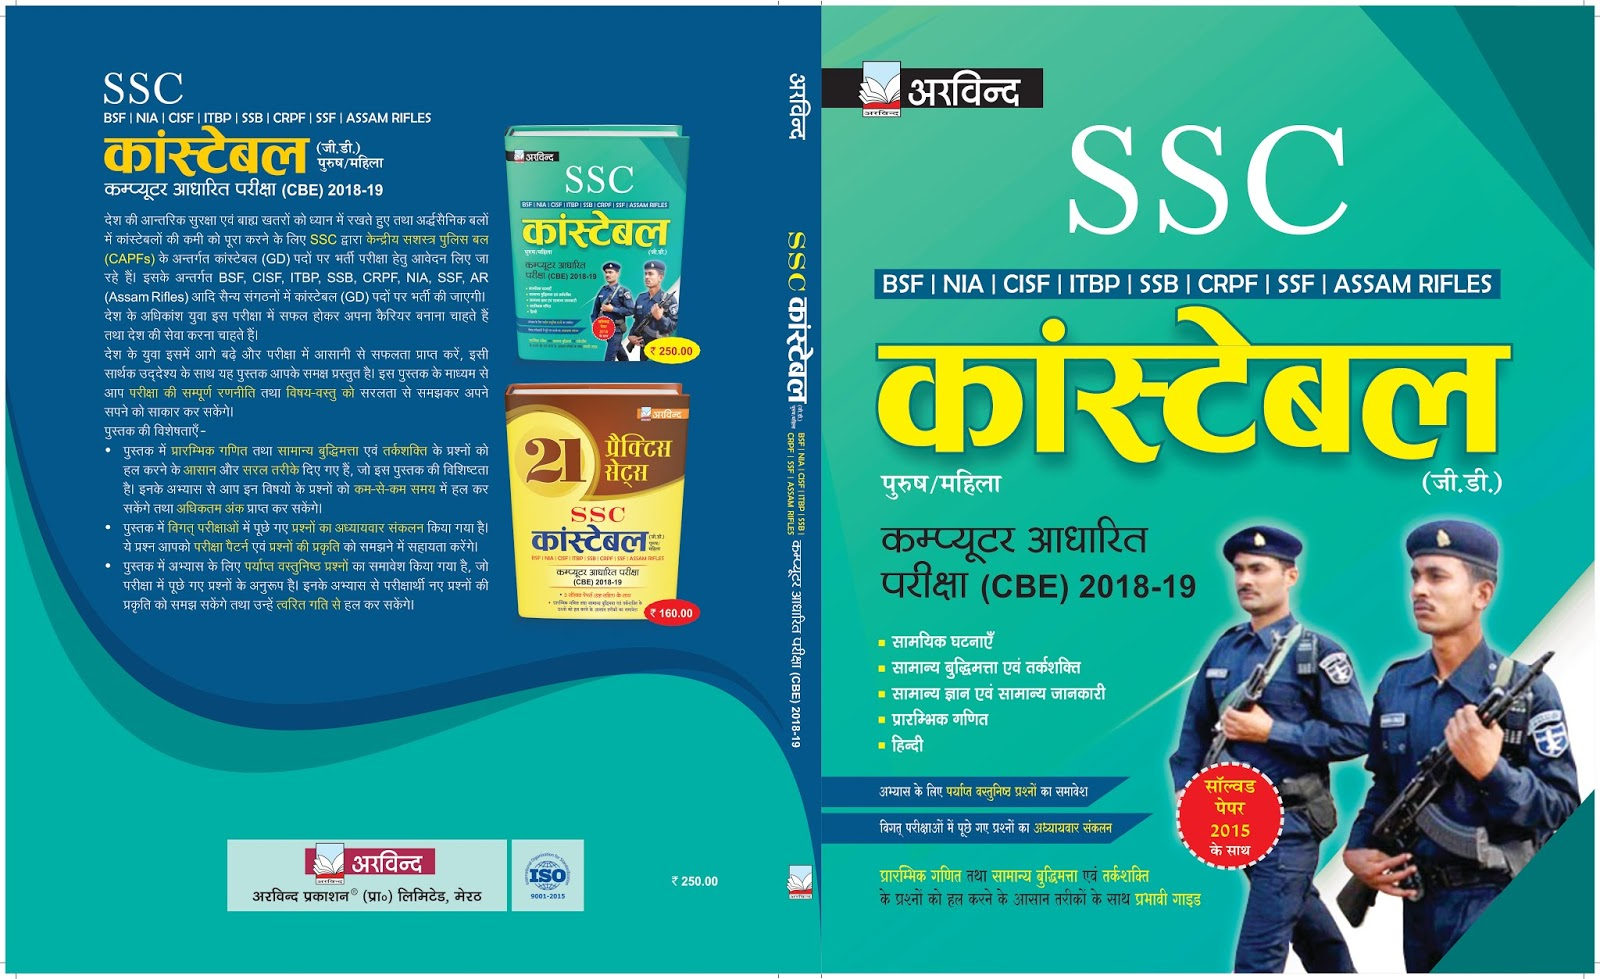 best SSC preparation constable guide 2019 - 2020 in hindi